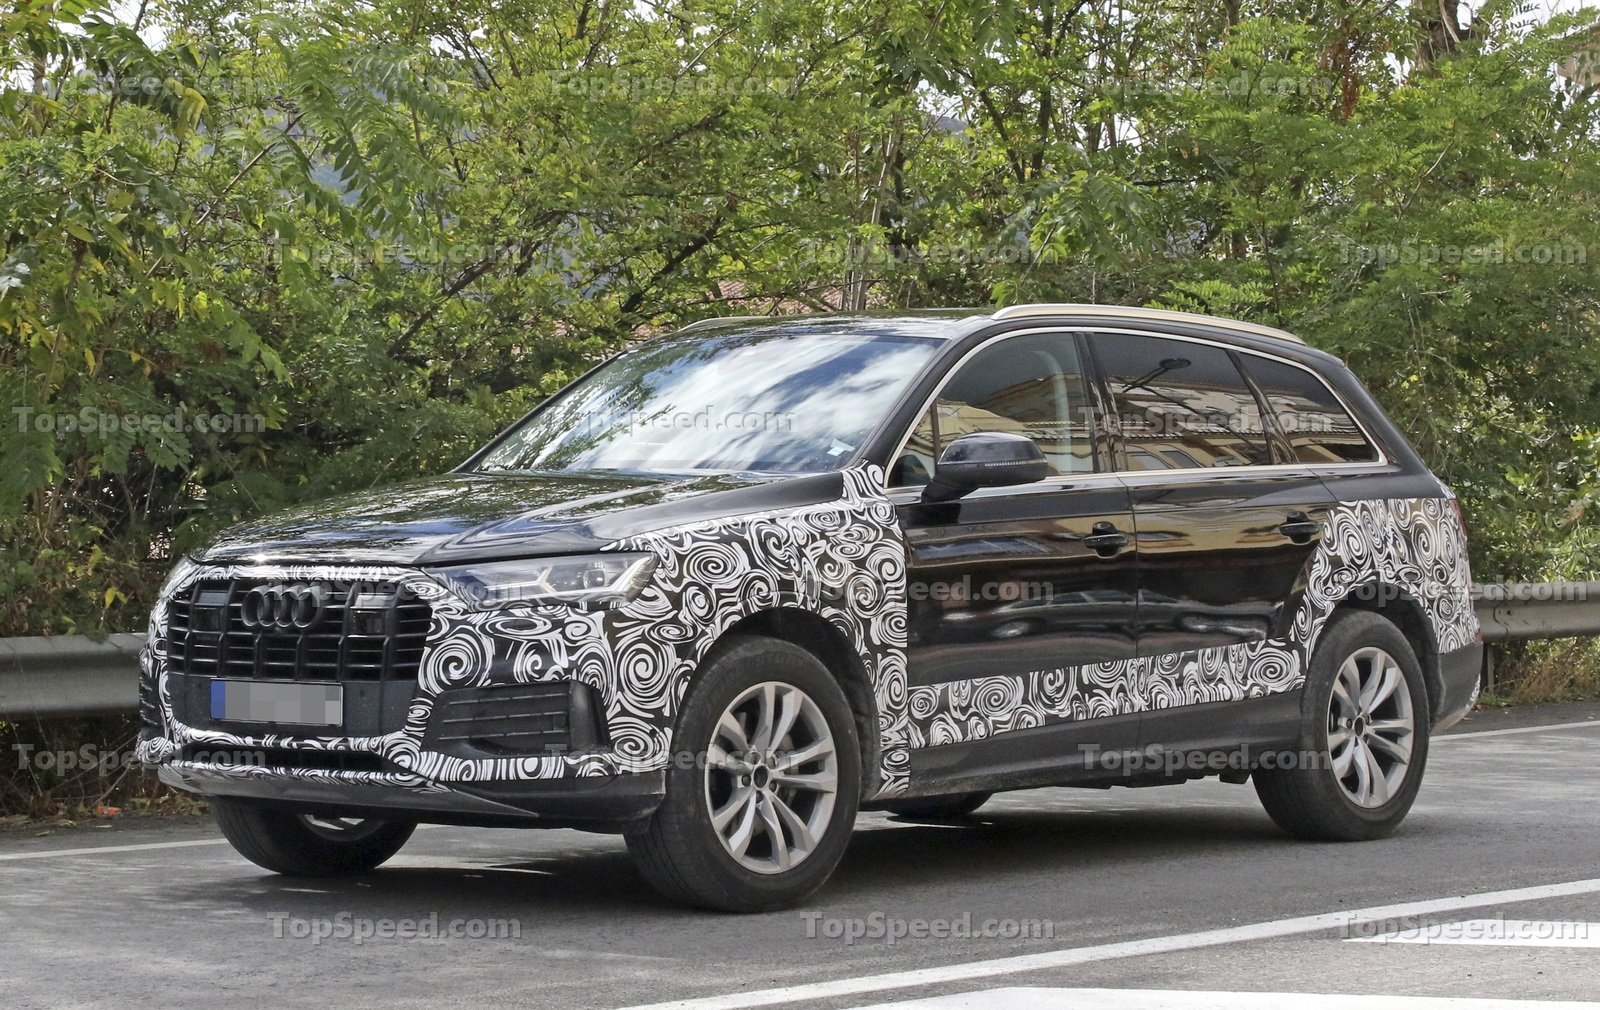 2020 Audi Q7 | Top Speed